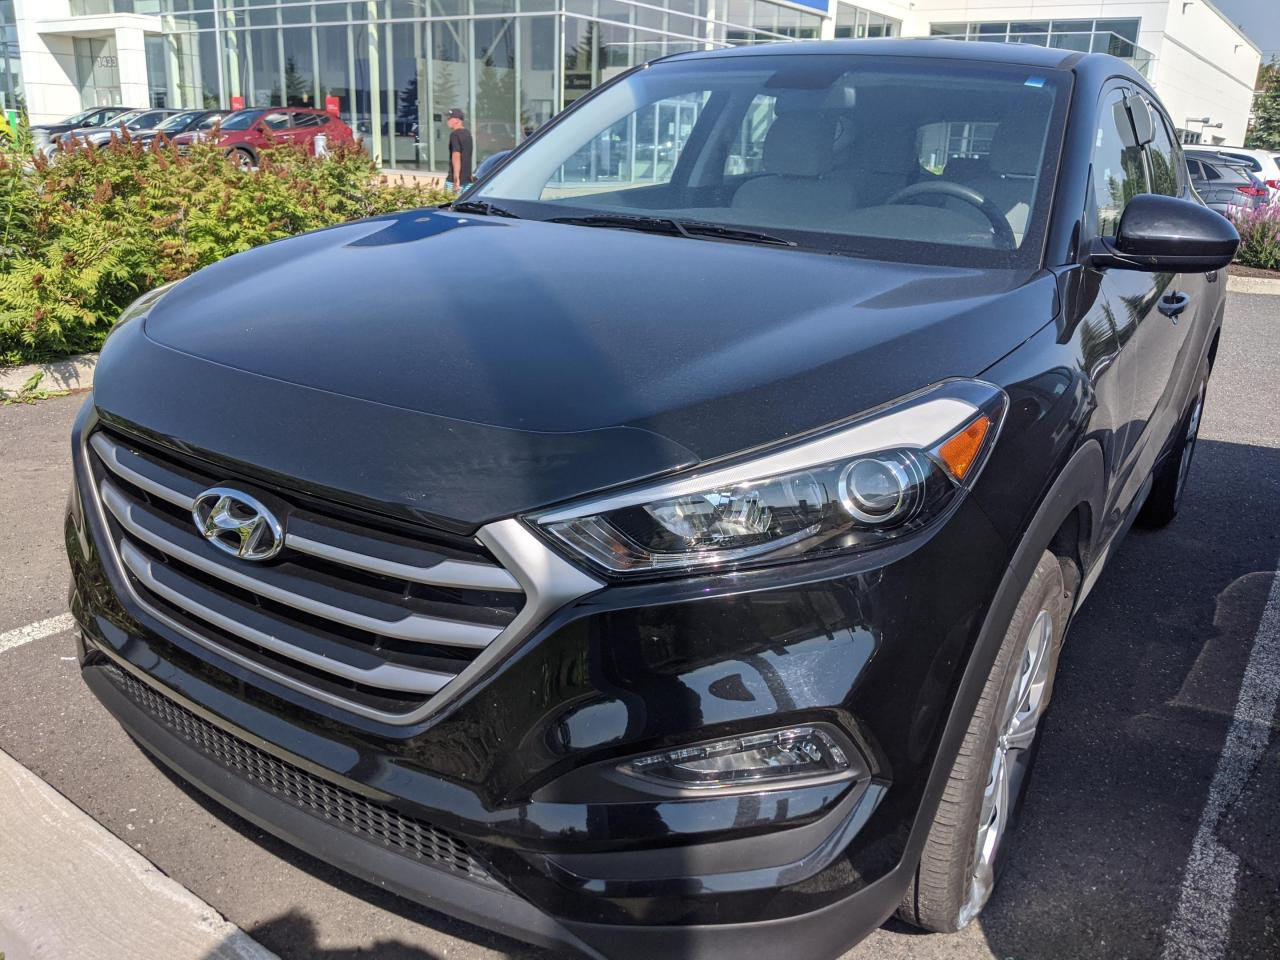 used 2017 hyundai tucson awd 4dr 2.0l for sale in ste-julie, quebec carpages.ca